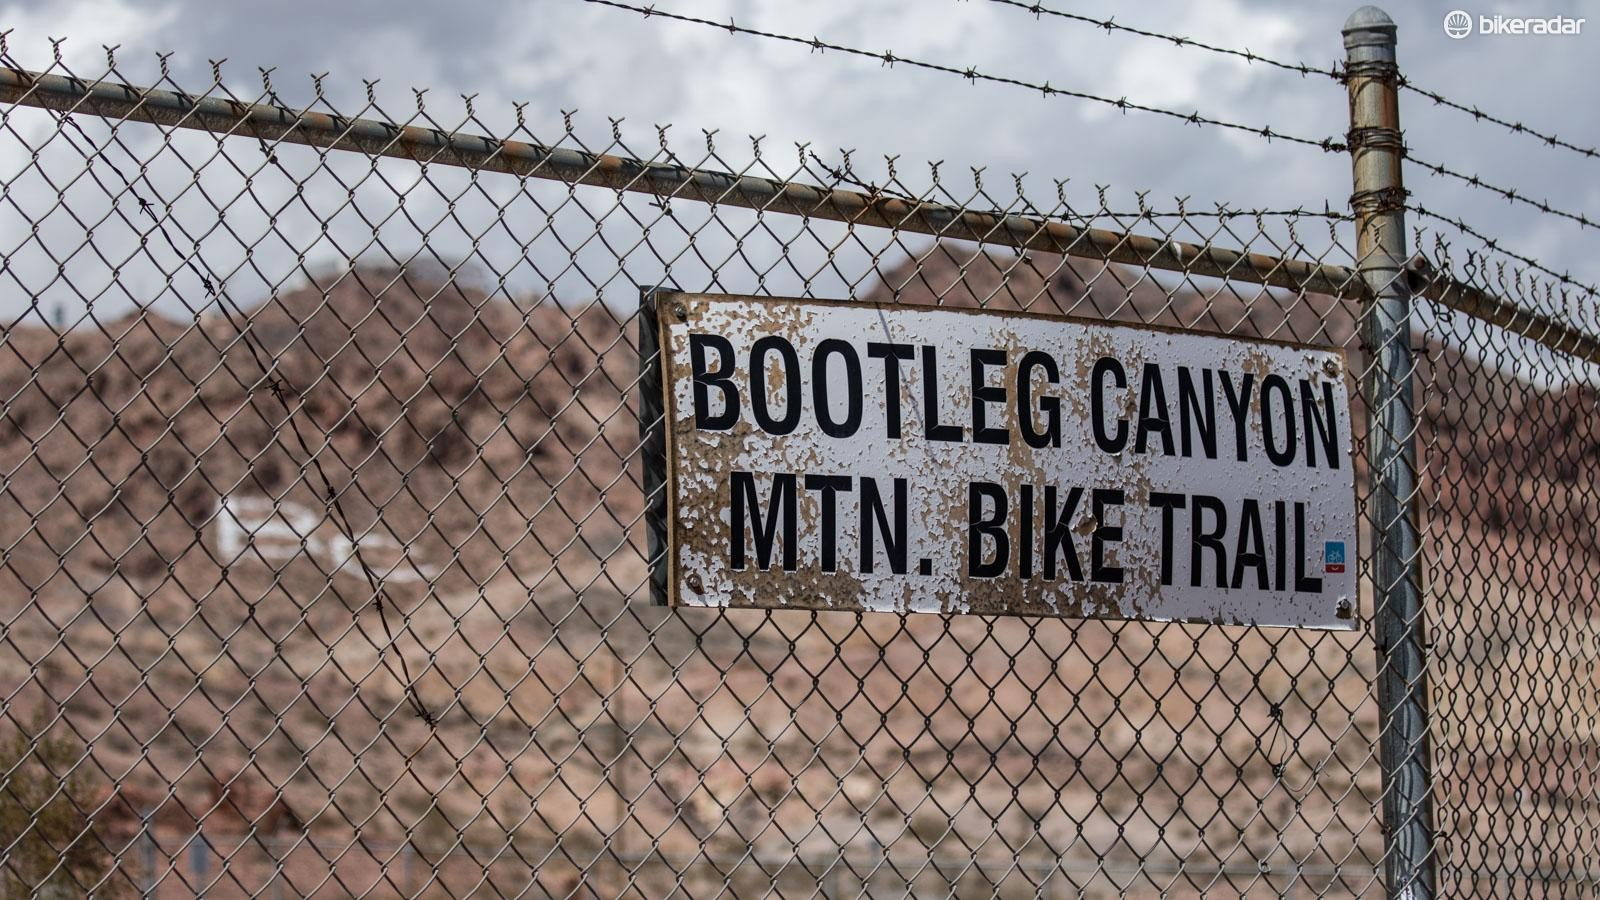 Welcome to Bootleg Canyon, Nevada, host of the bike industry's latest and greatest demo products for 2016